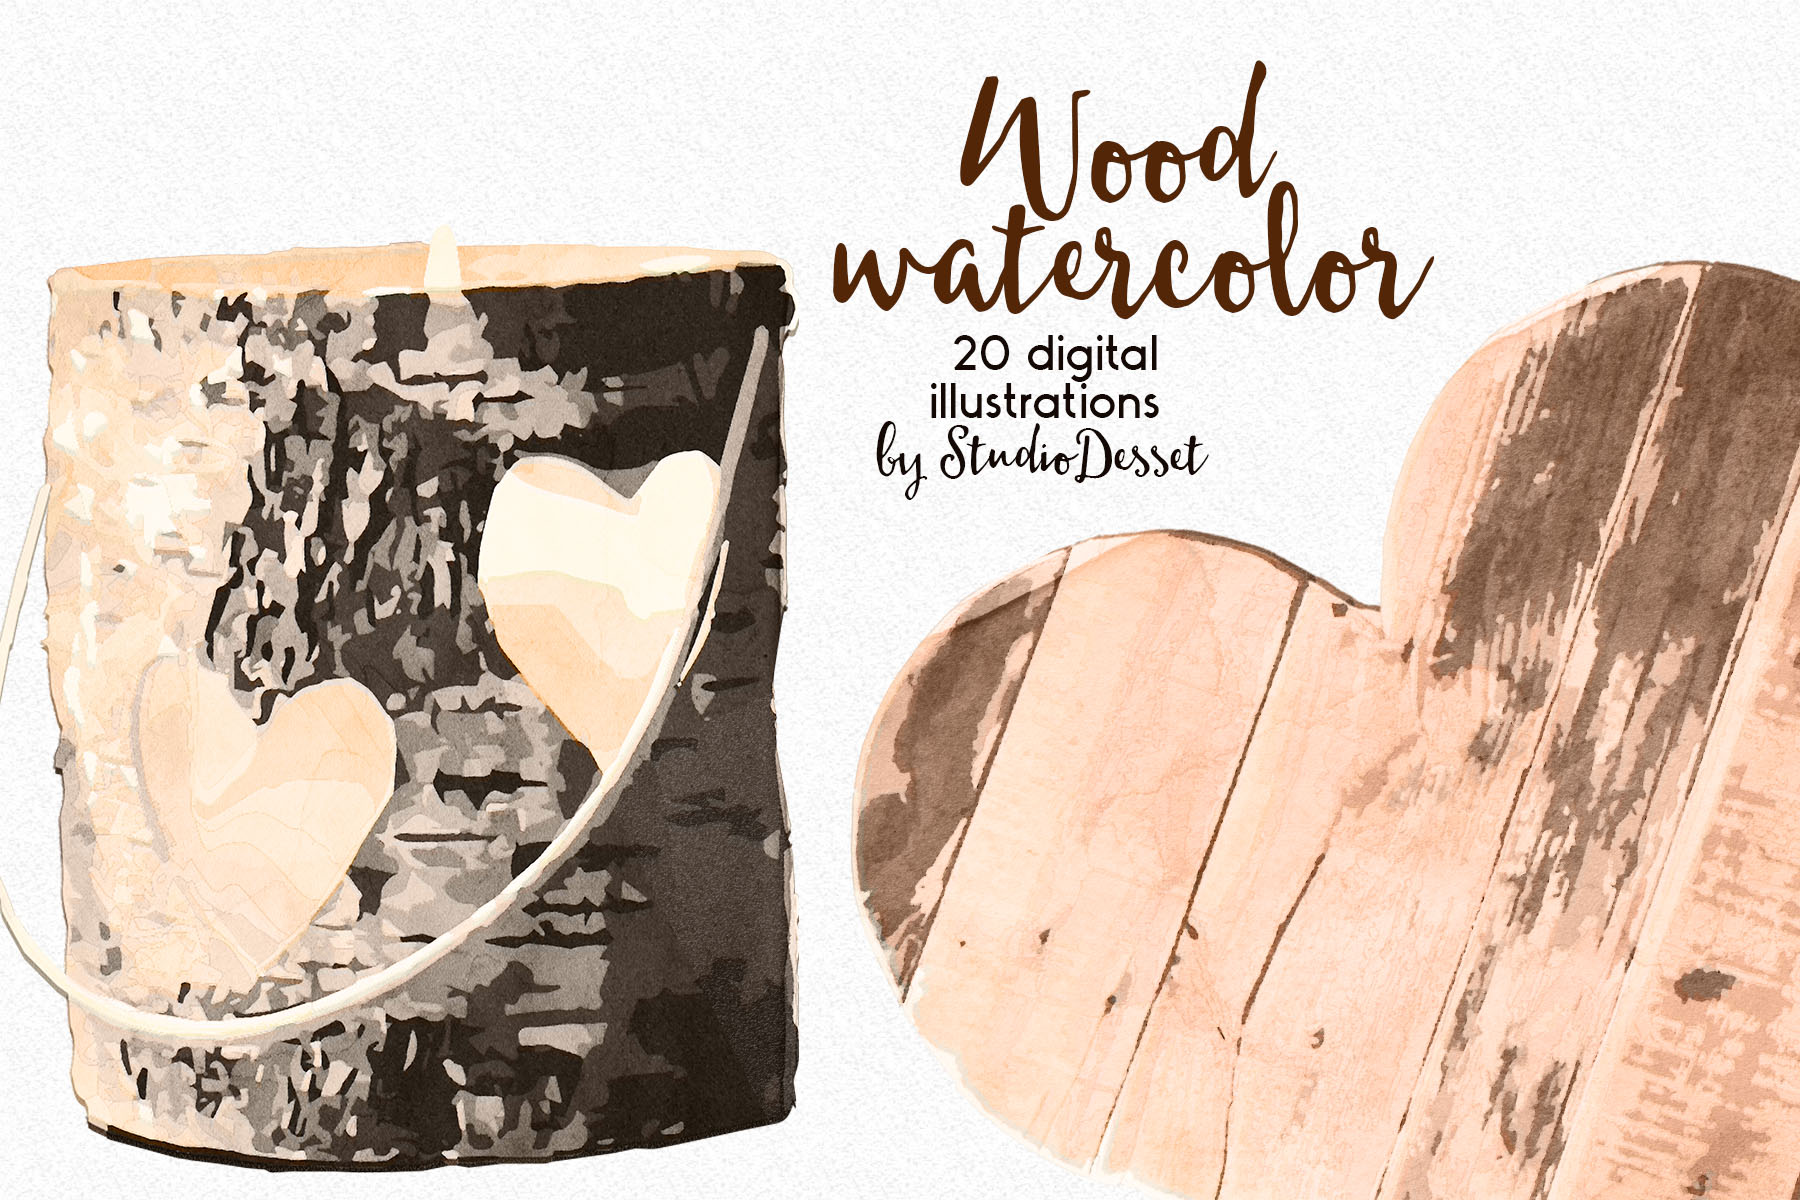 Rustic Wood Watercolor Illustrations example image 2